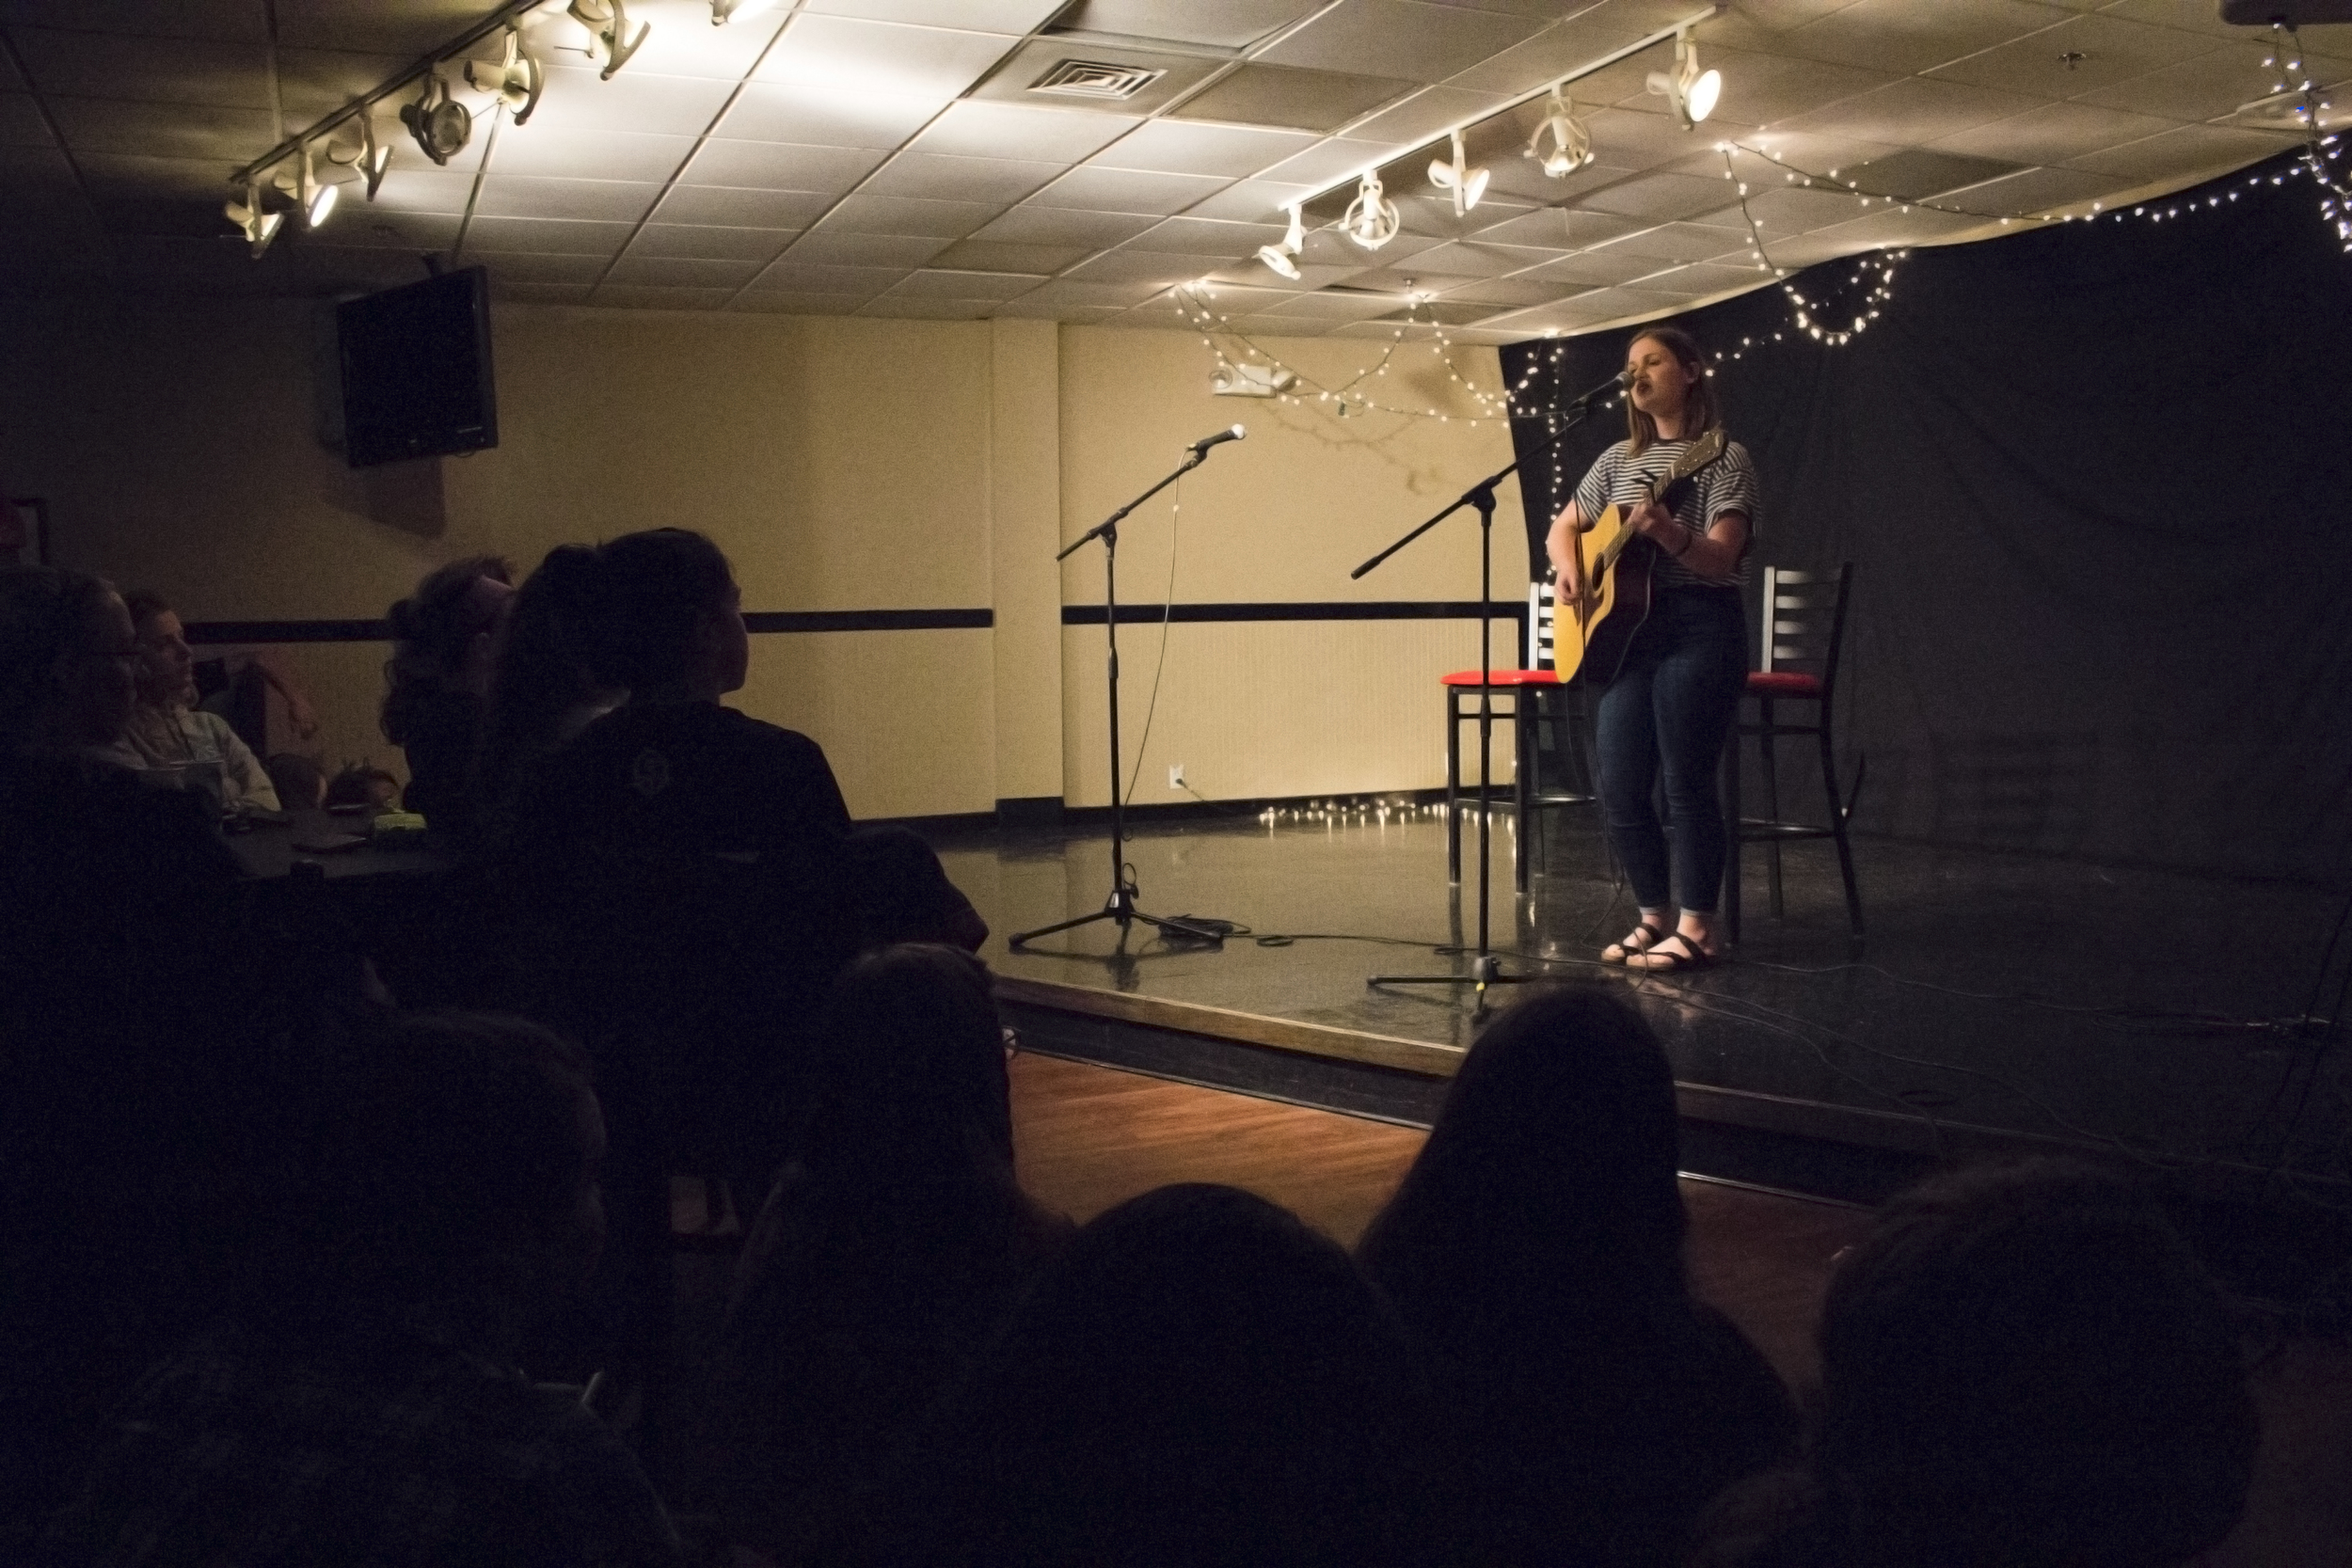 Morgan McNorrill rocks the stage by bringing back some old school Adele.